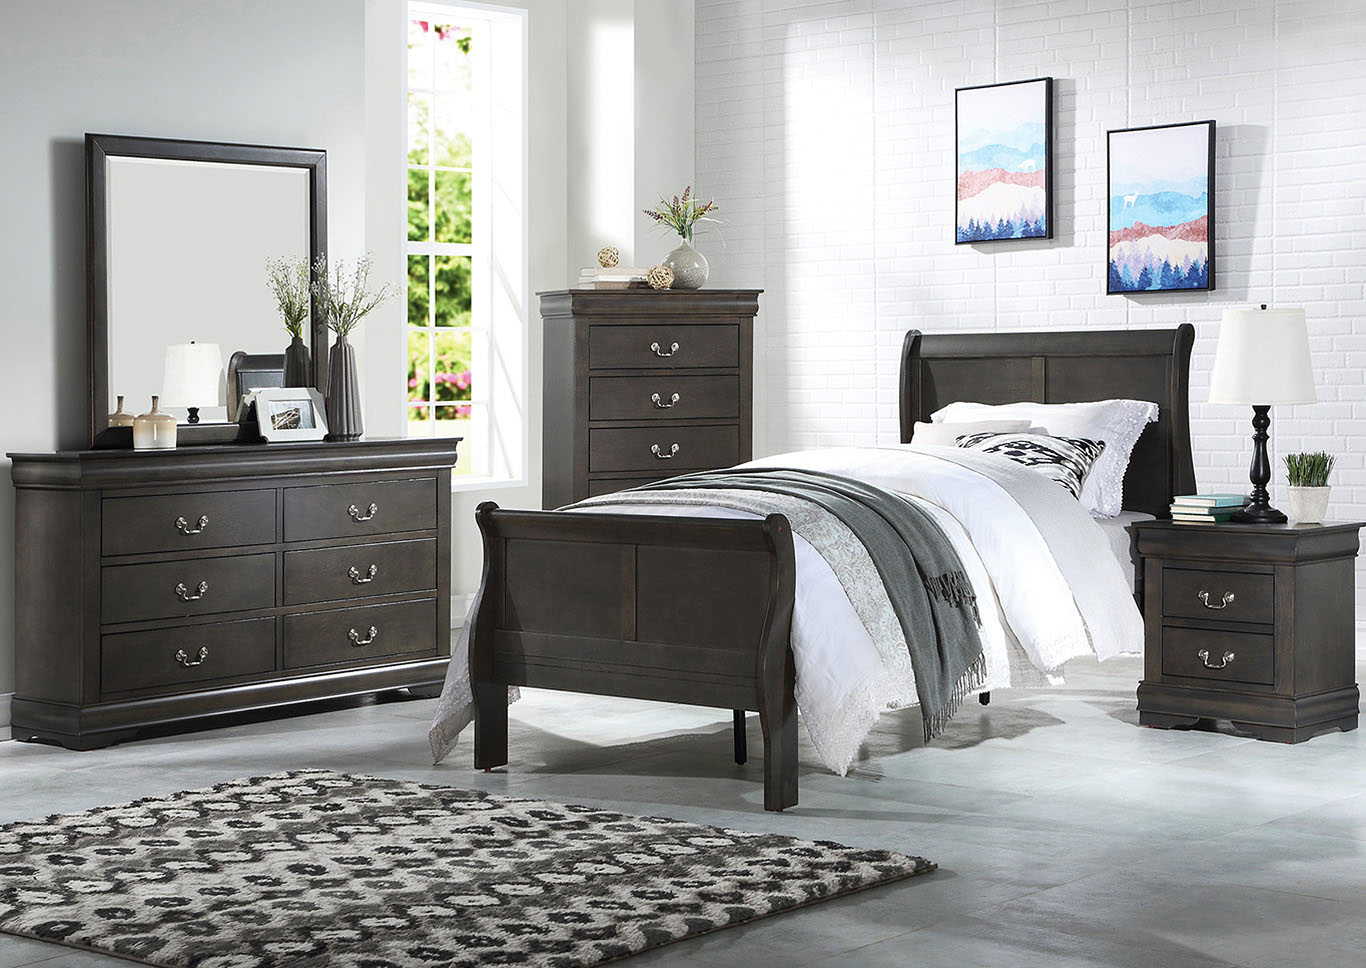 Louis Philippe Grey Full Sleigh Bed w/Dresser and Mirror,Acme